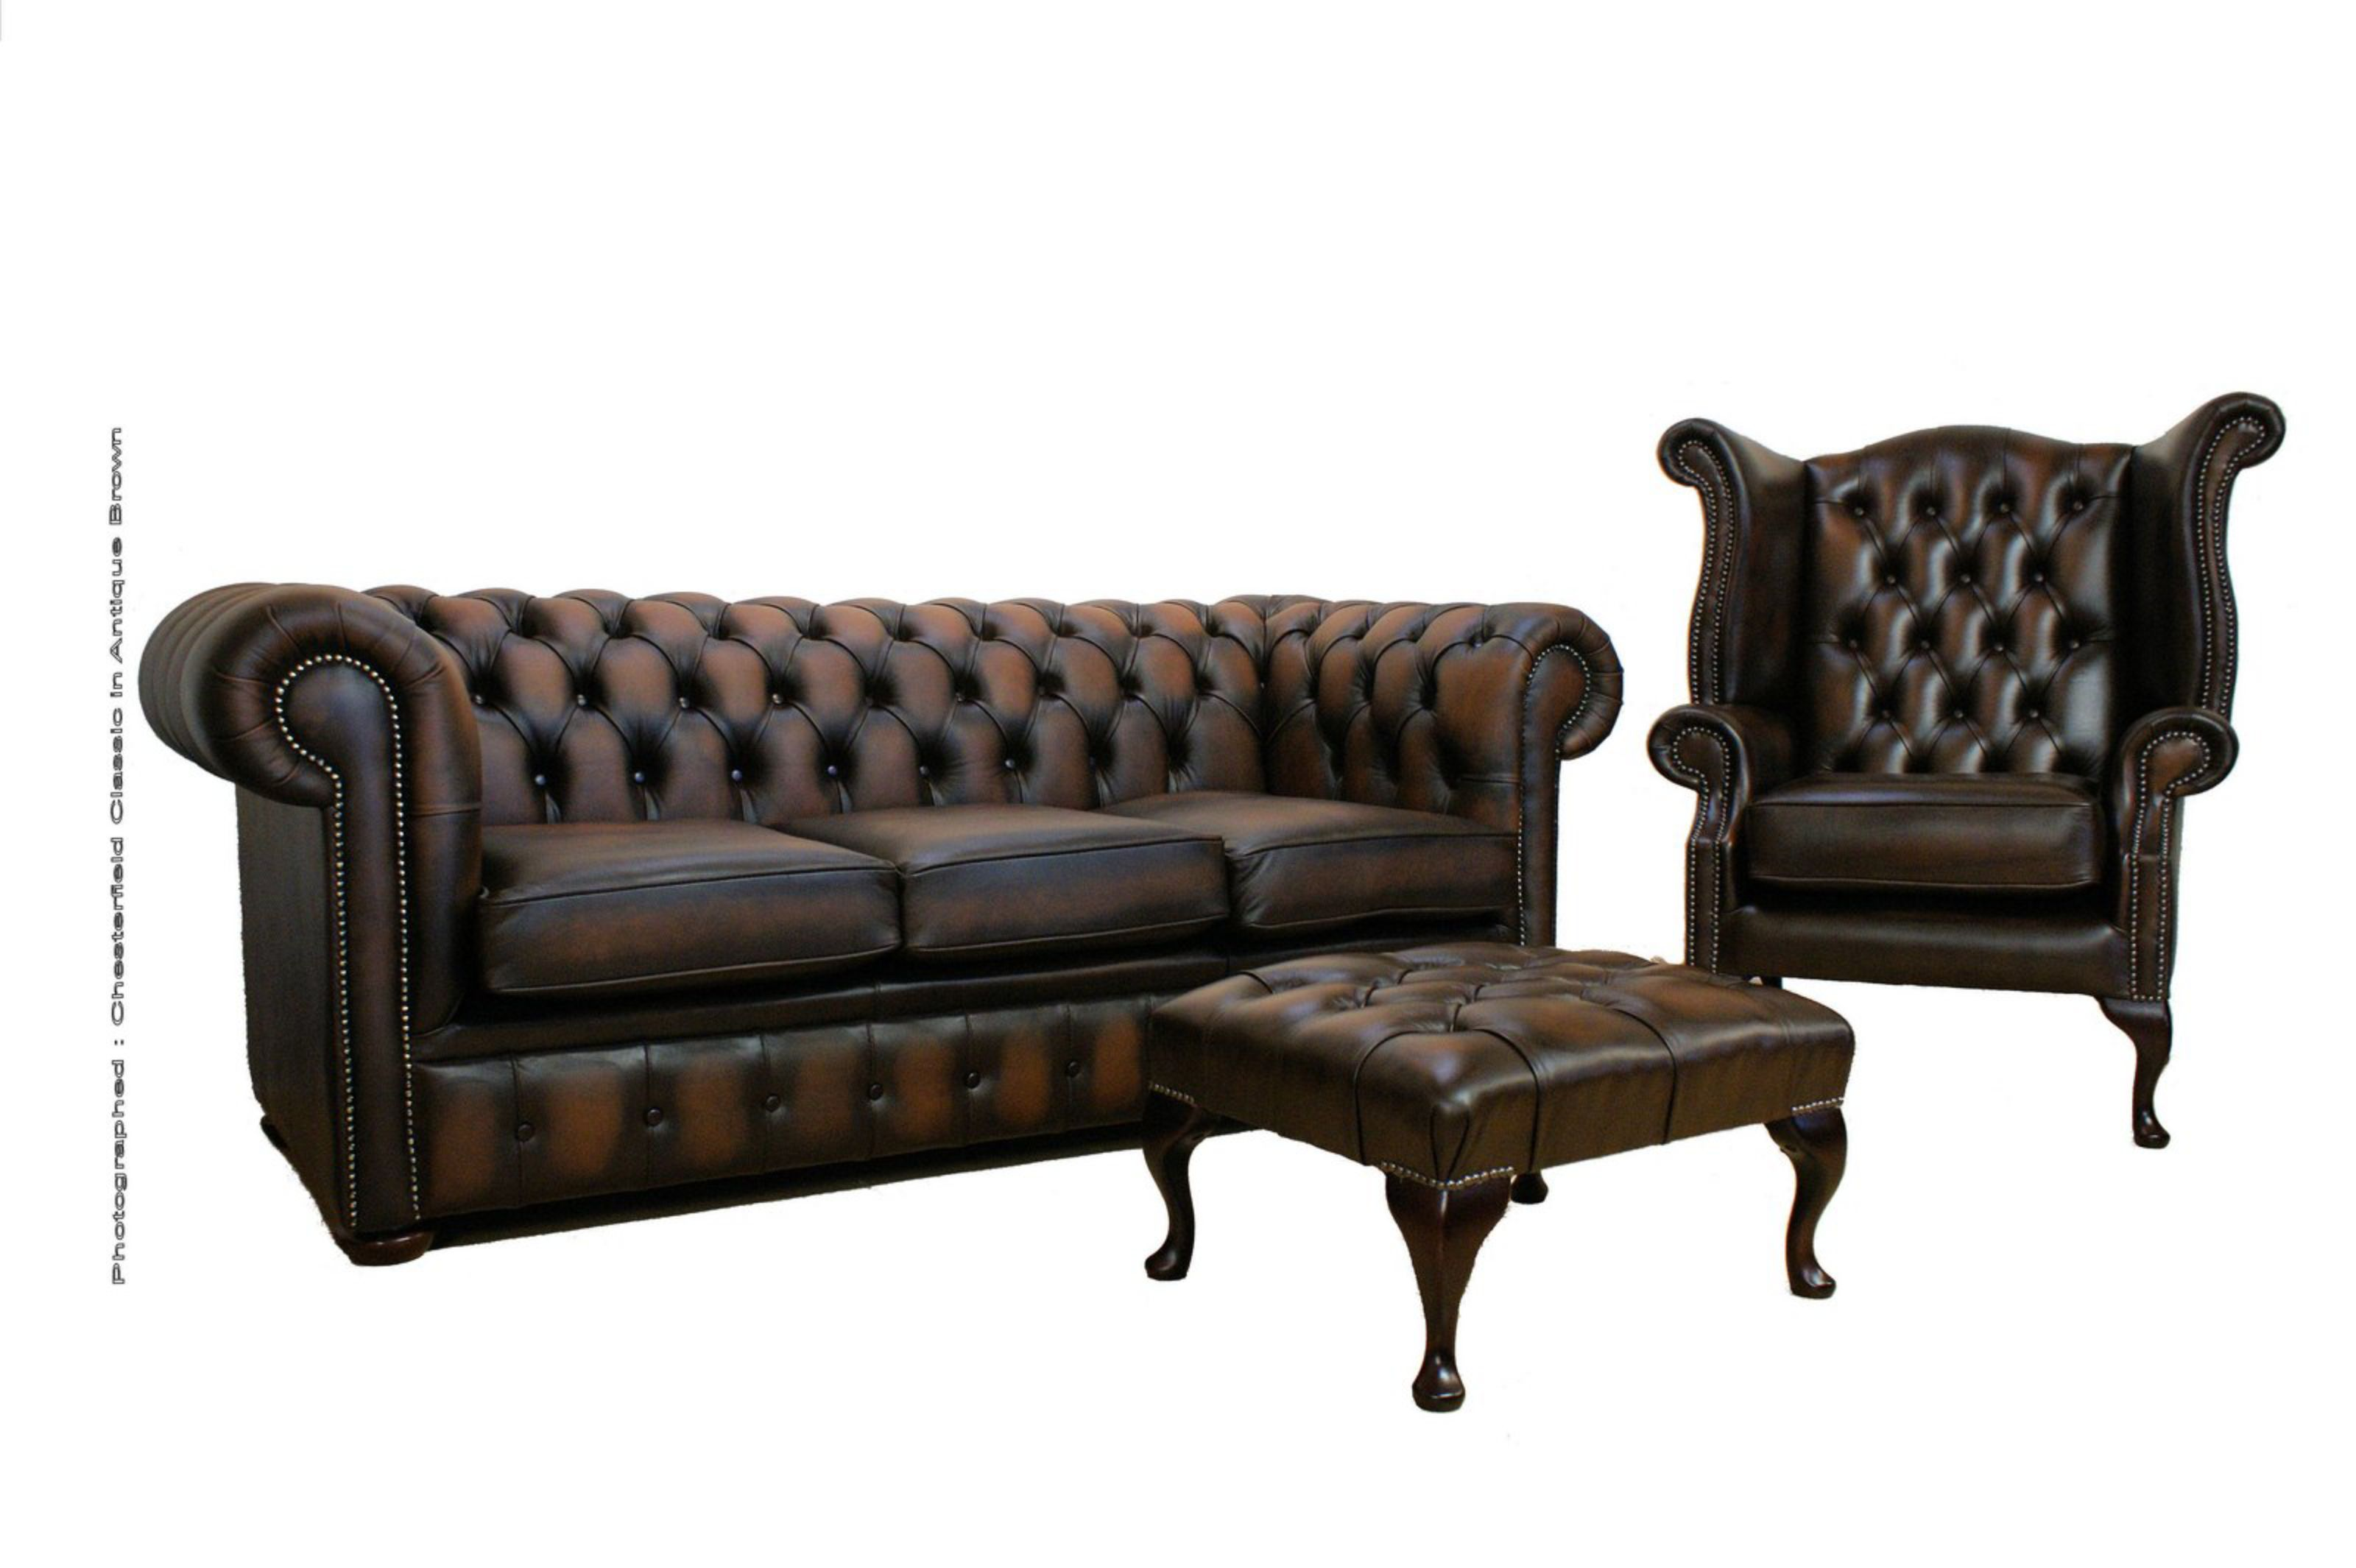 chesterfield sofa buy uk camper bed diy brown leather suite made in designersofas4u